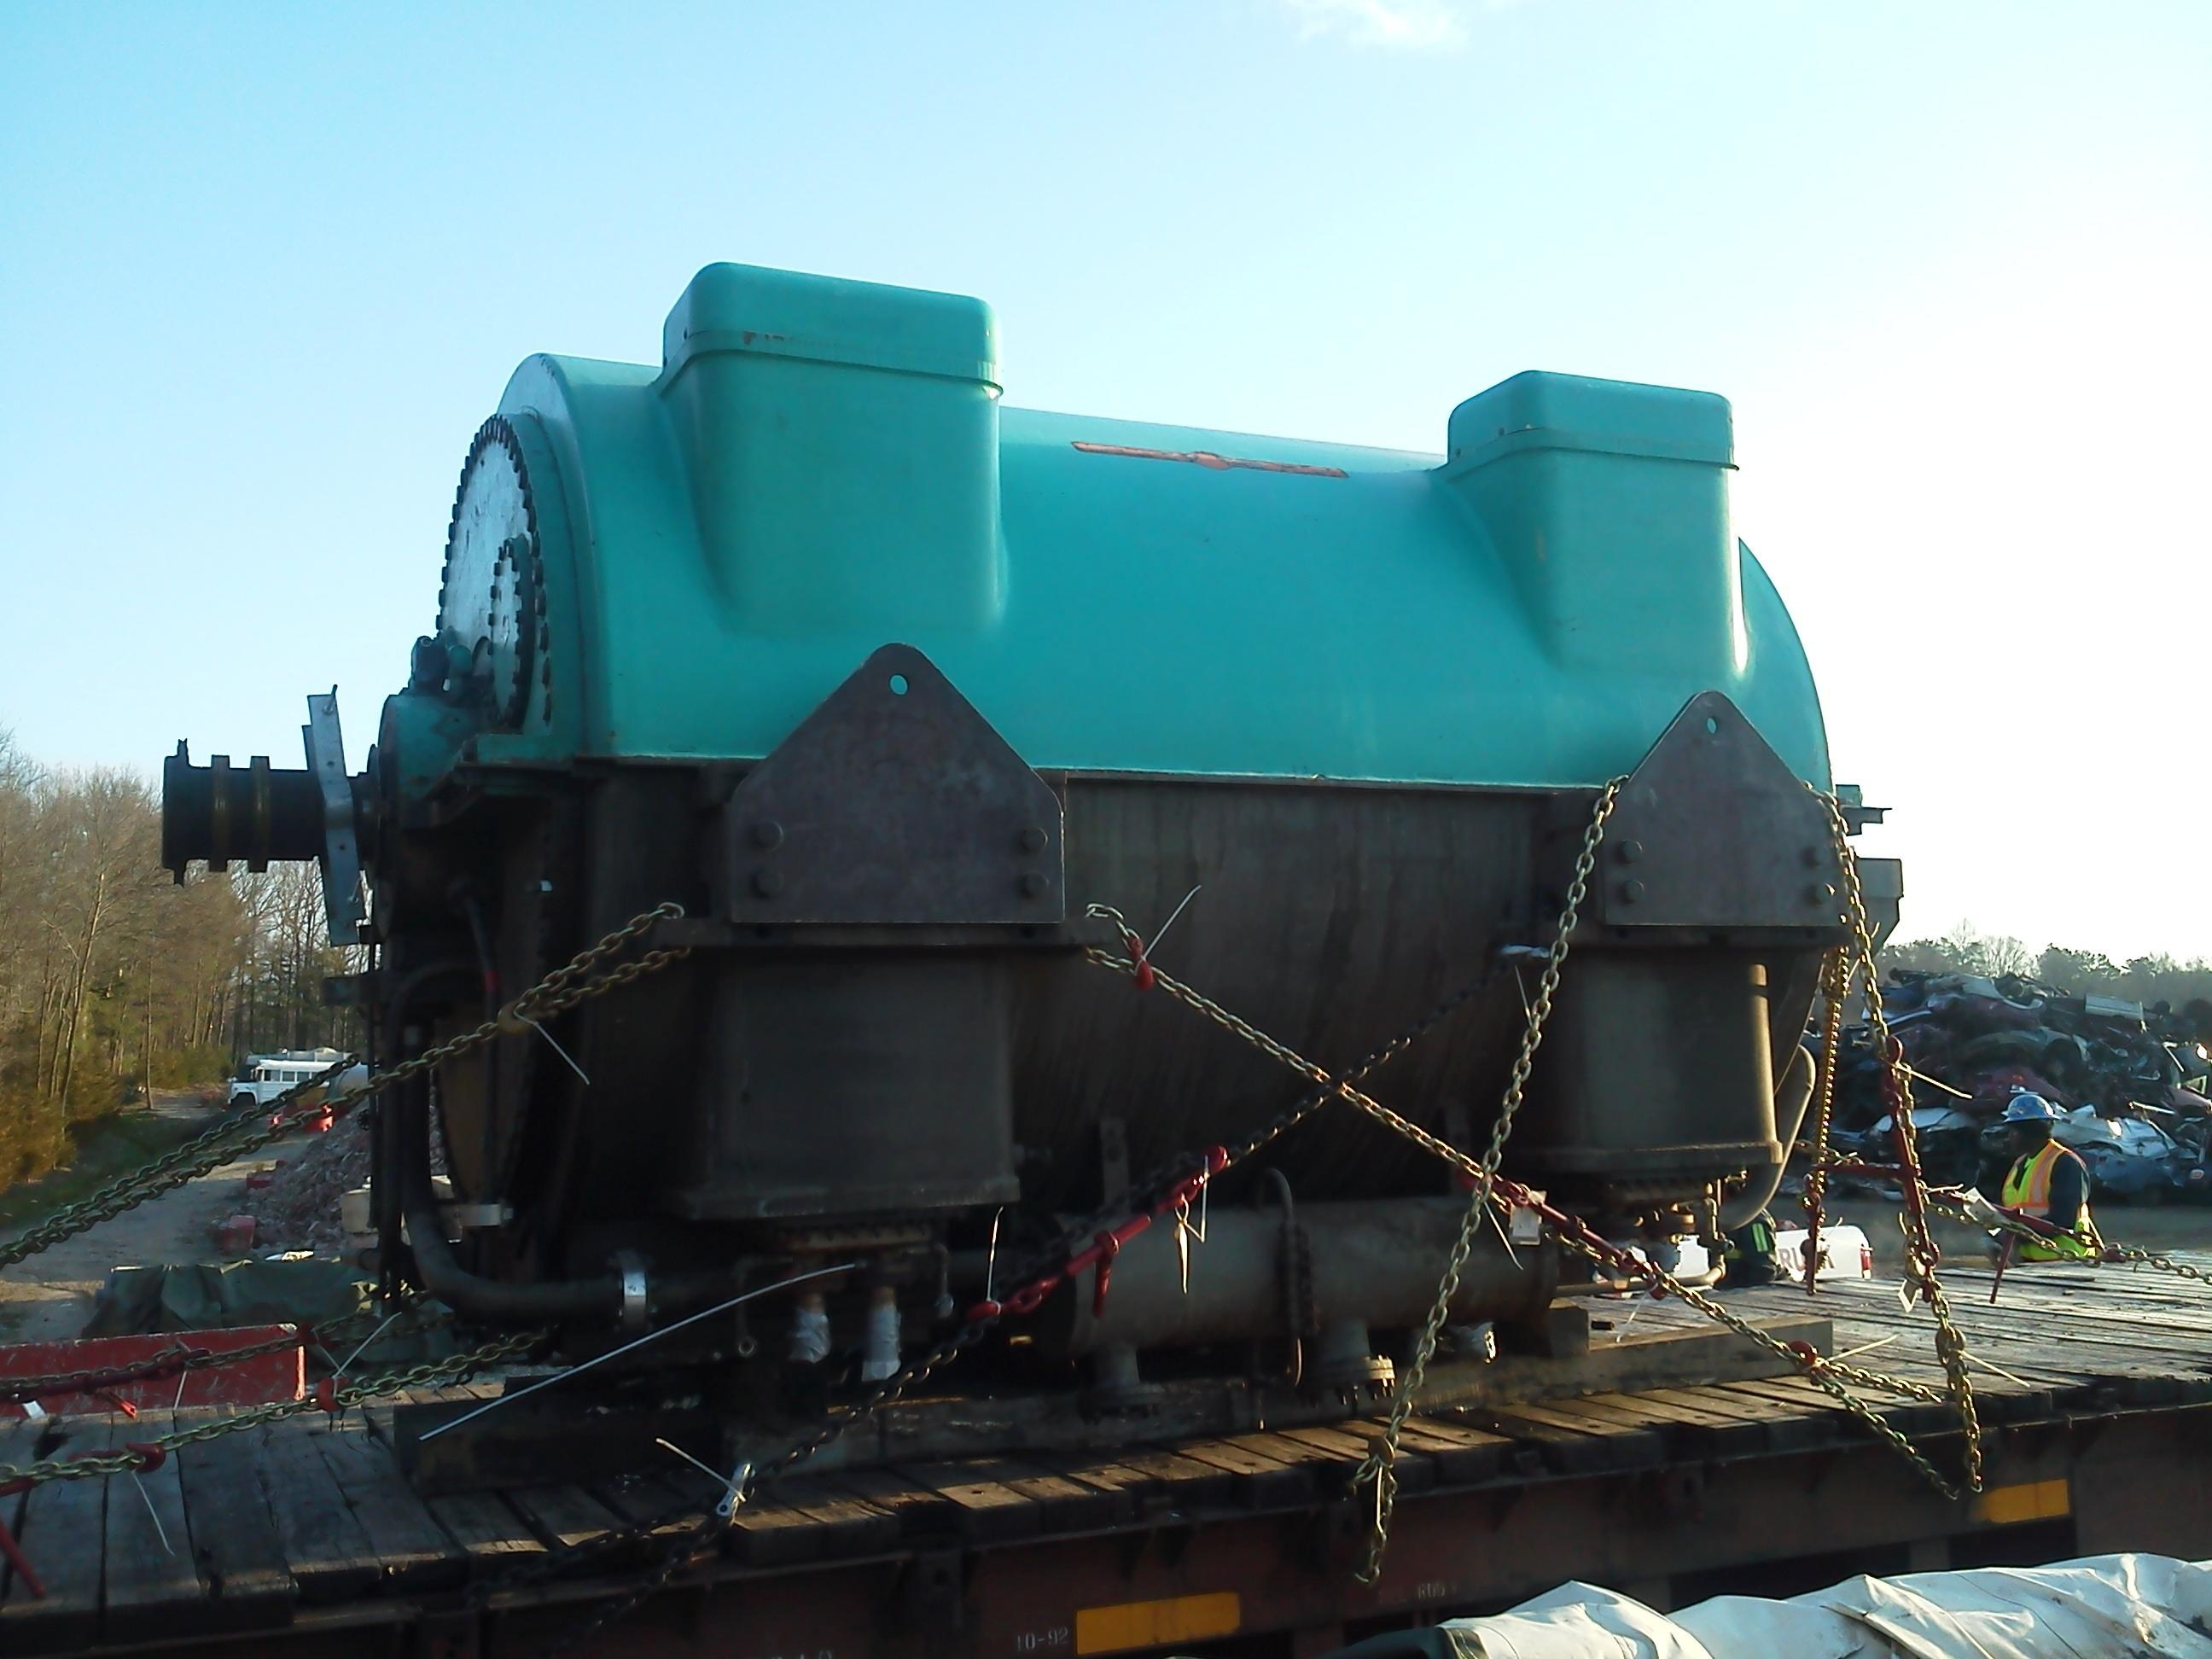 steam turbine Search for used steam turbine find general electric, delaval, elliott, dresser, worthington, siemens, clark, sharples, westinghouse for sale on machinio.